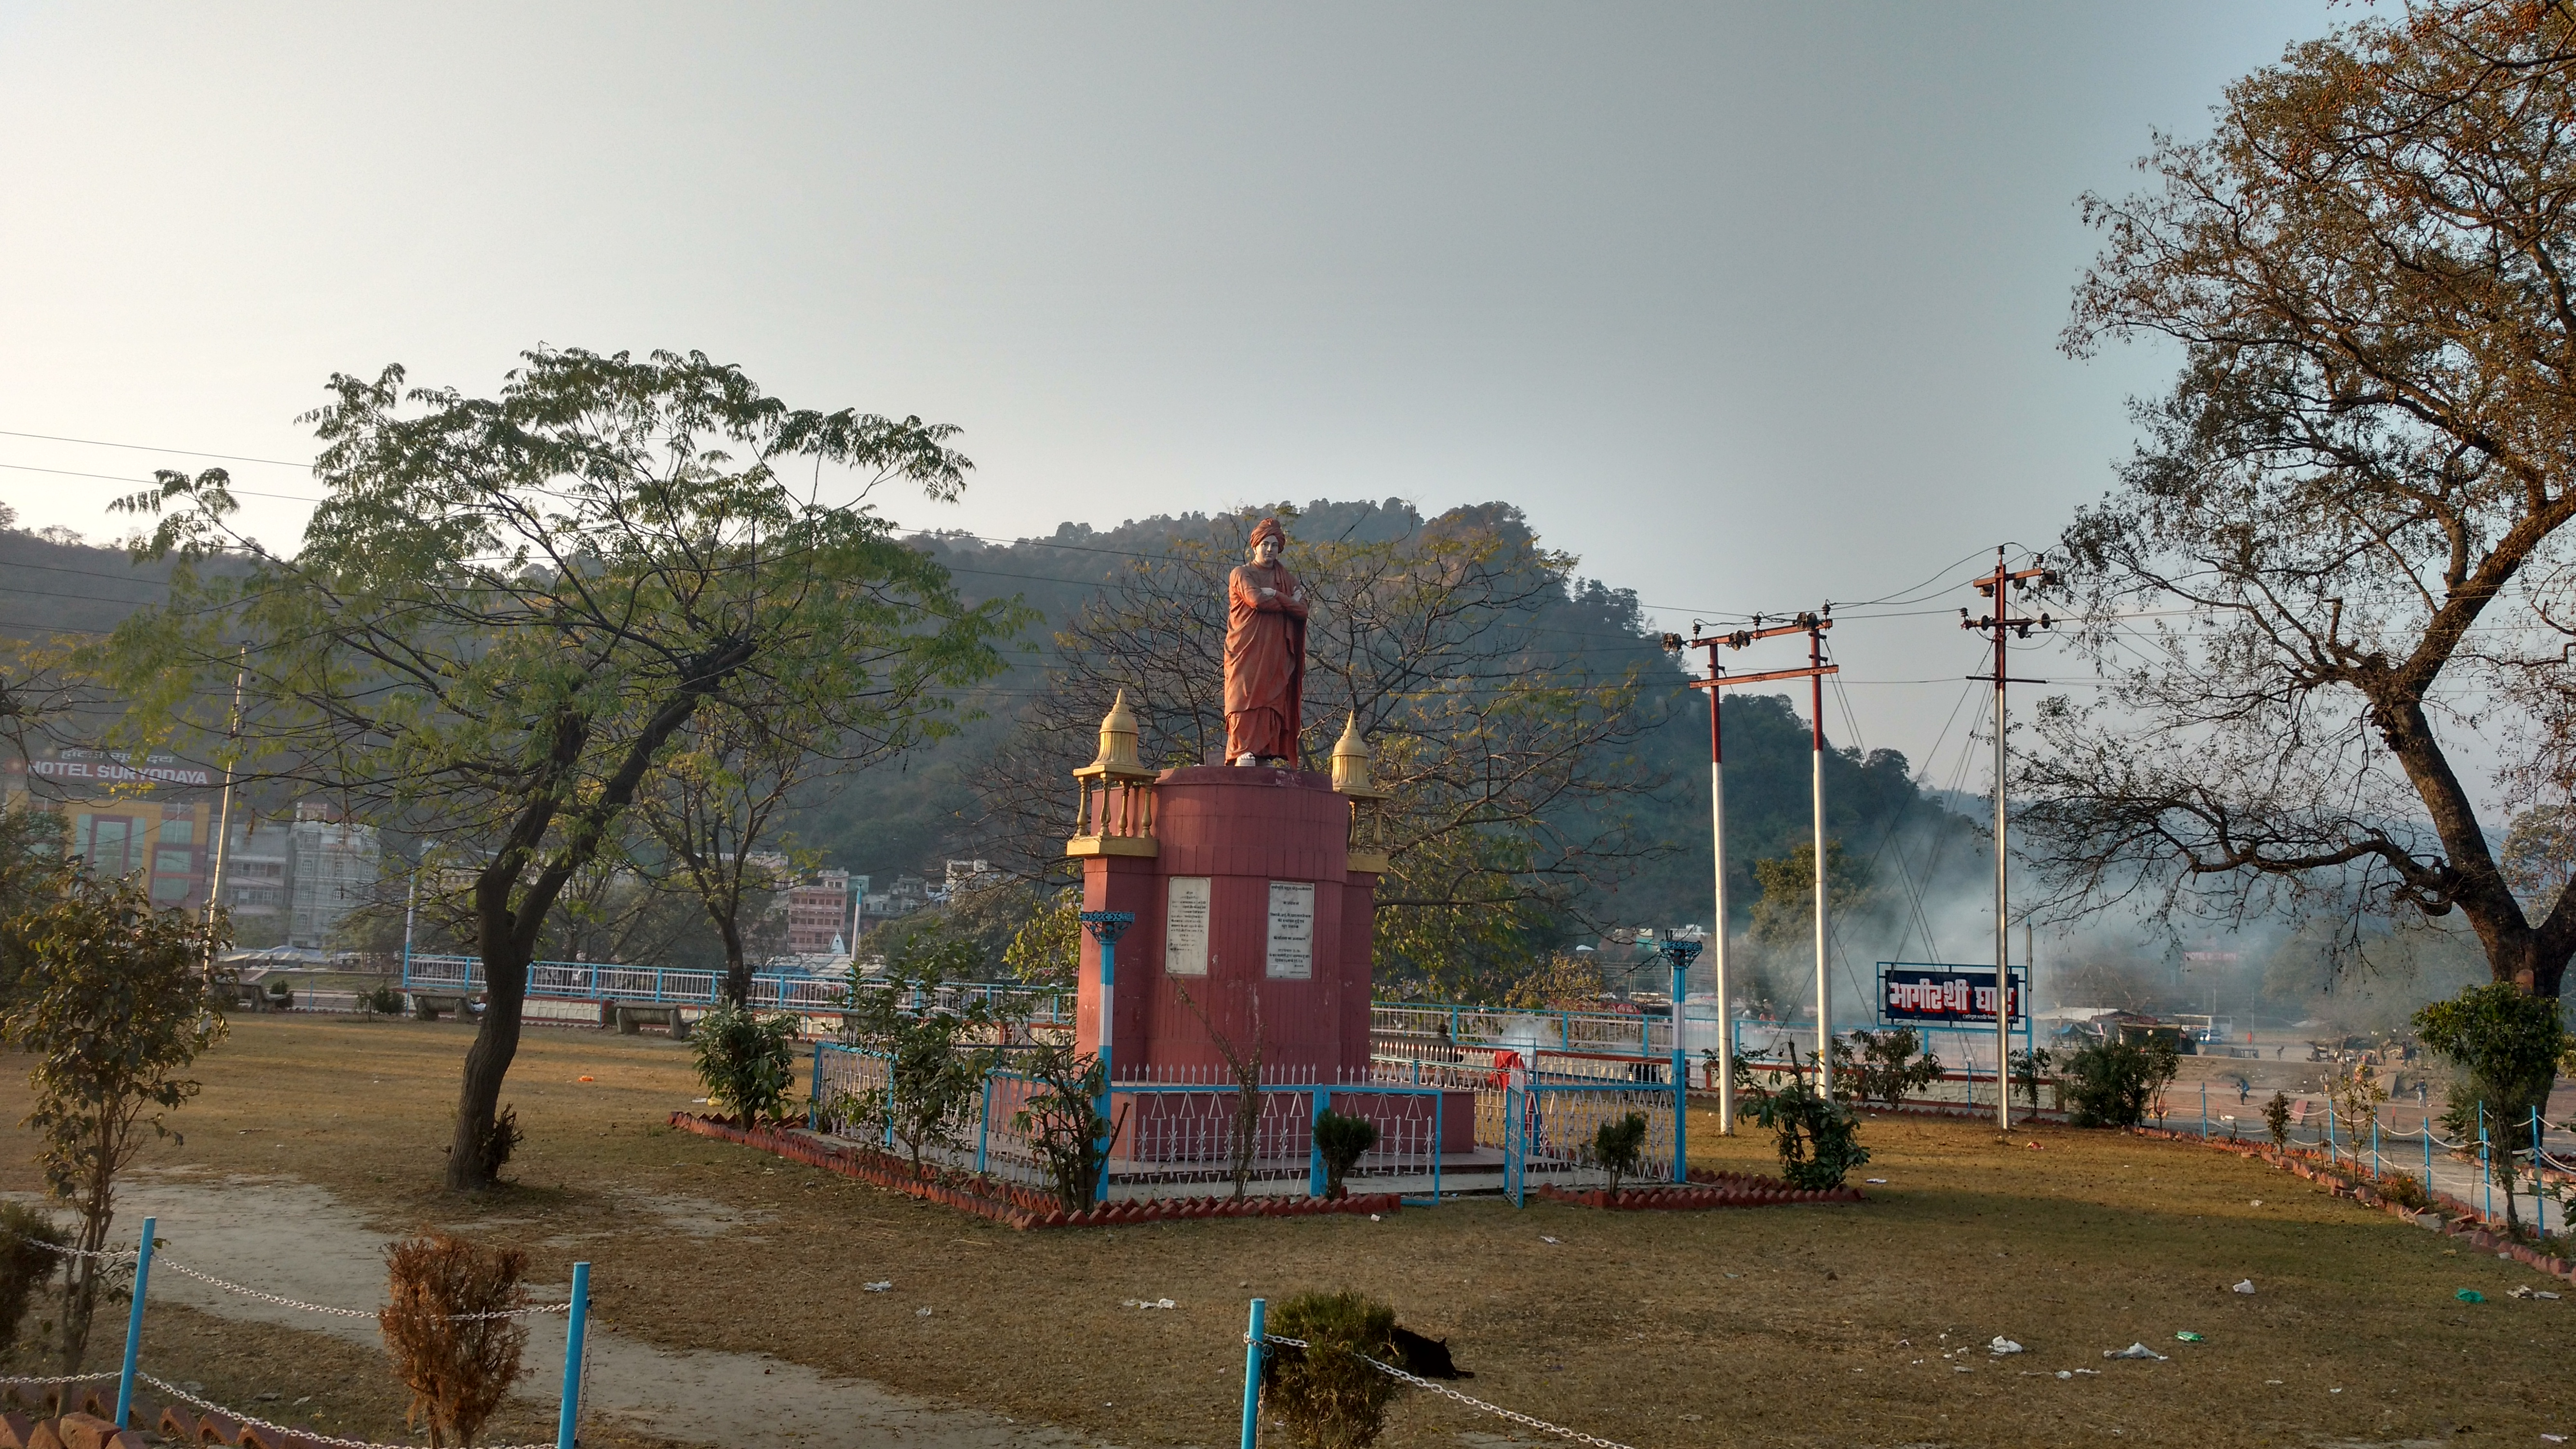 Swami Vivekanand Park (12th Place to Visit in Haridwar)